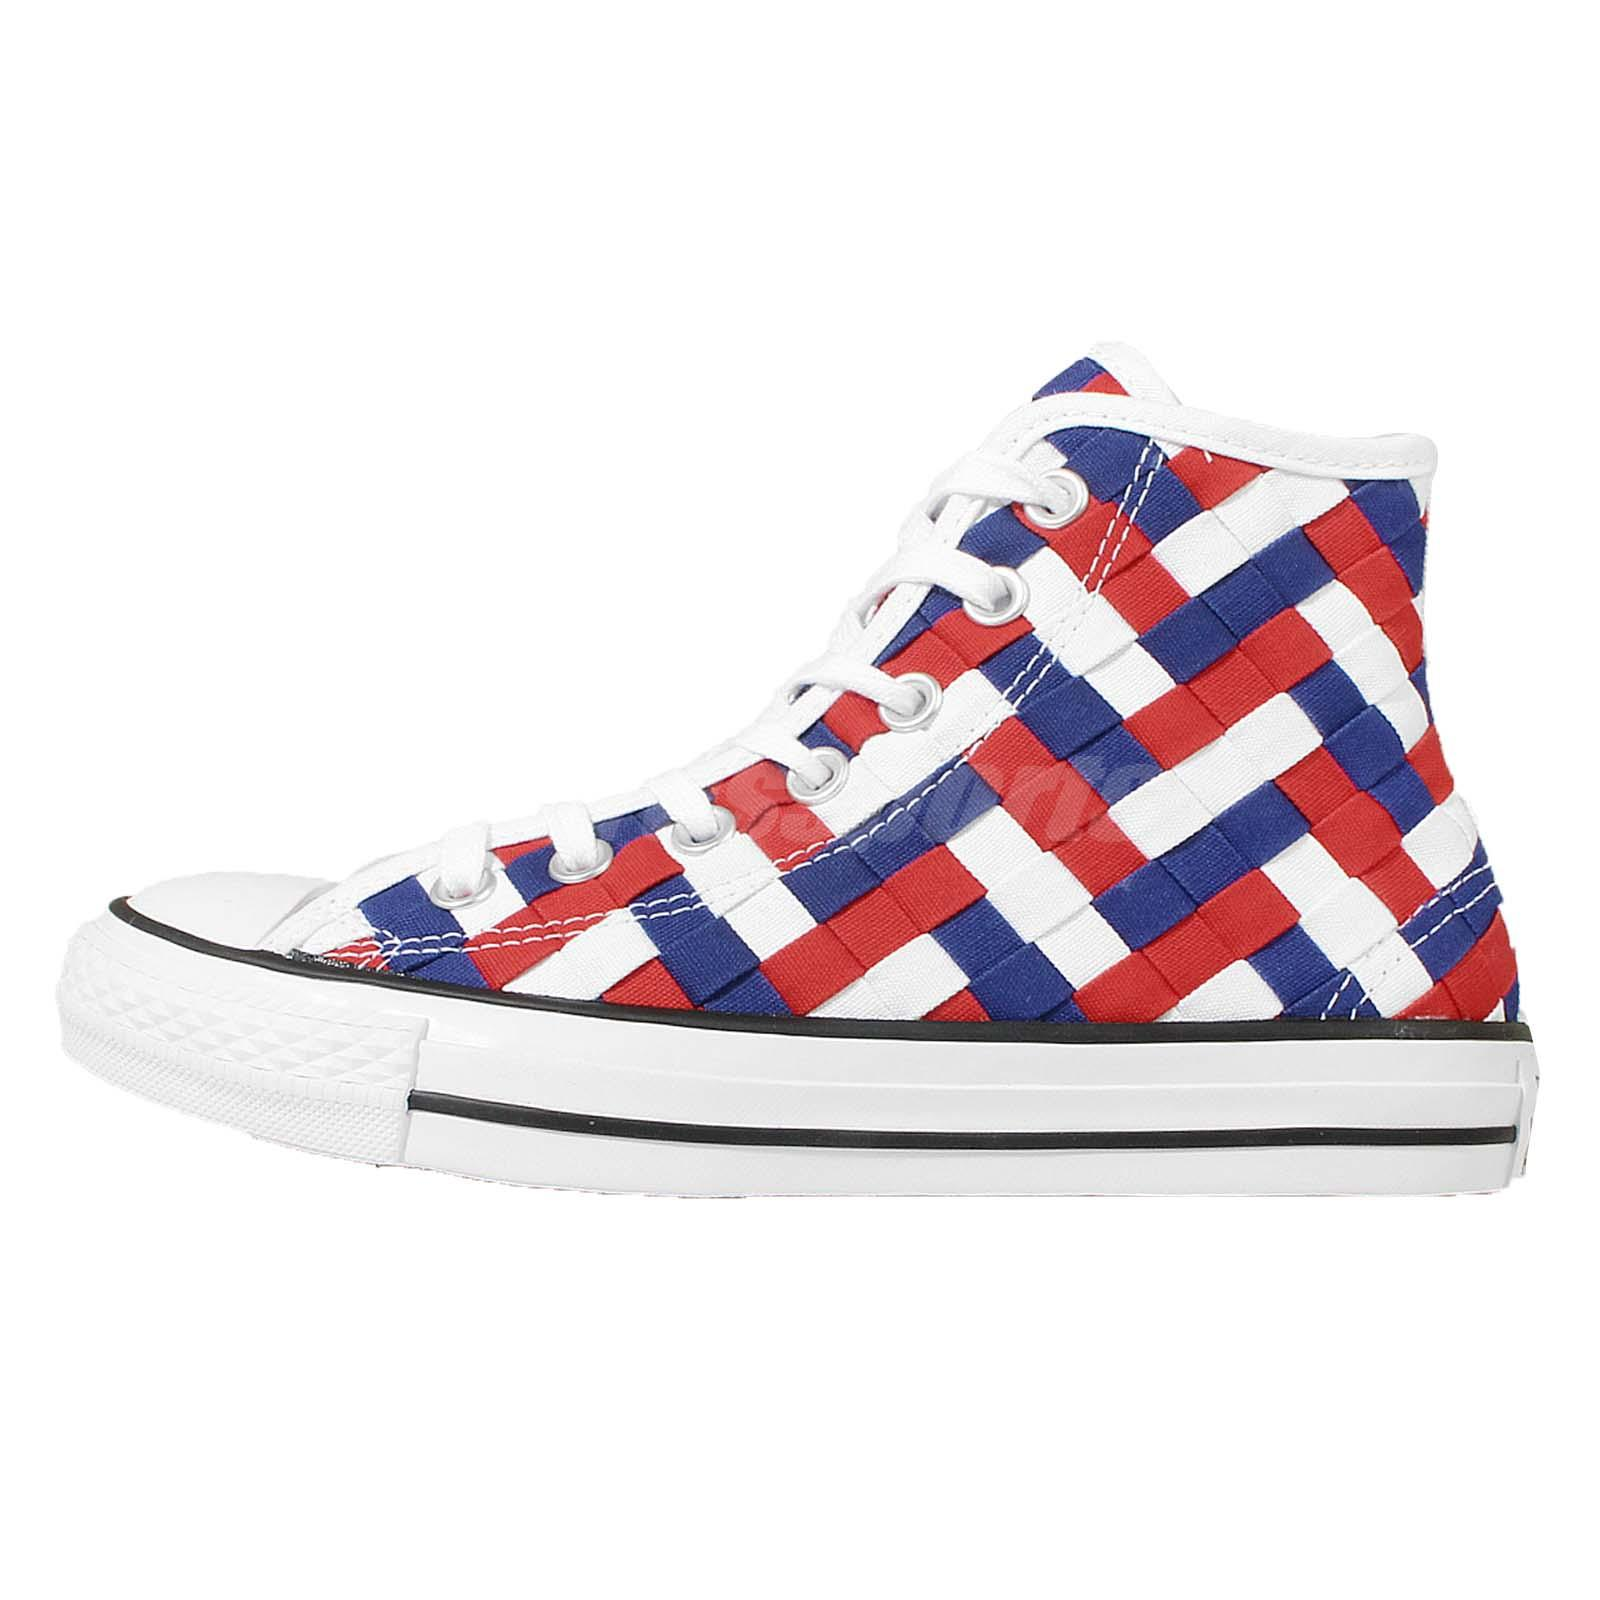 f6a723feac0e ... ebay converse chuck taylor all star white blue red woven mens womens  shoes 152902c dd328 56c8f